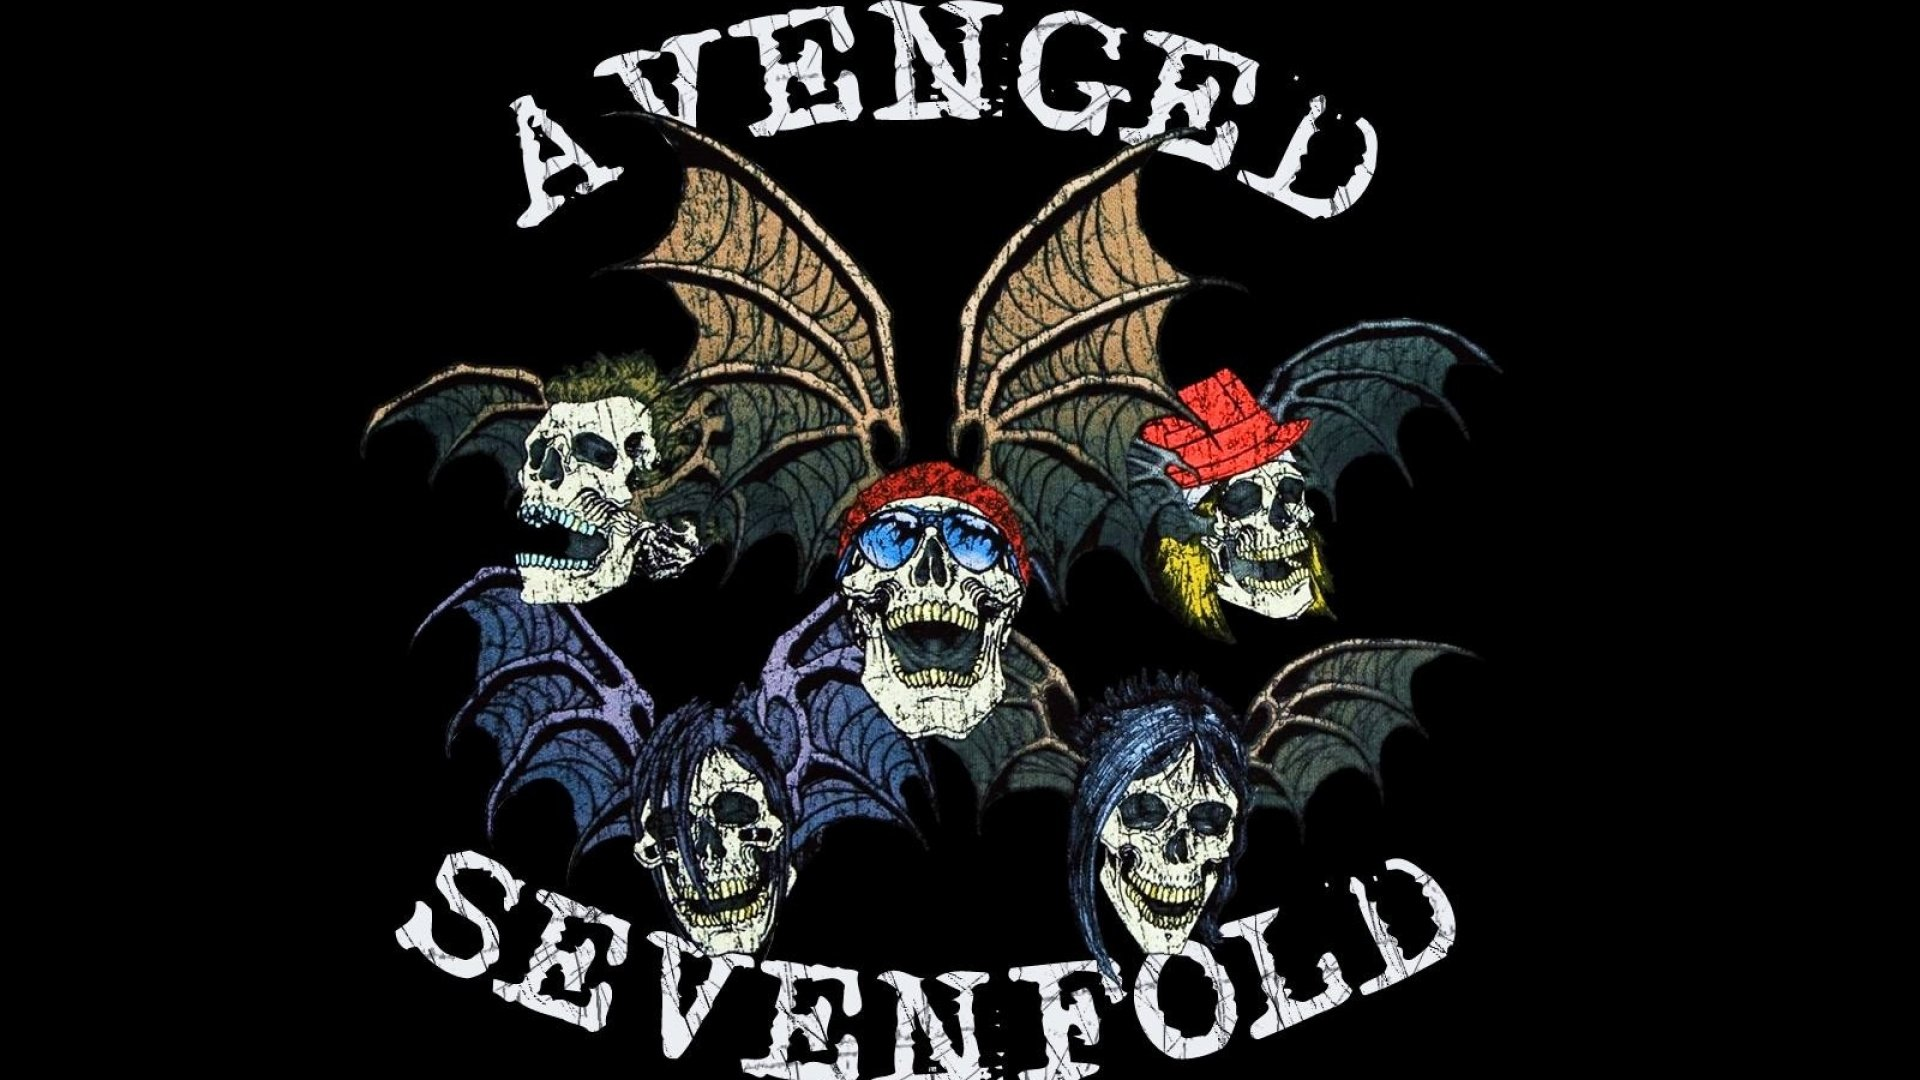 Avenged Sevenfold wallpaper 13595 1920x1080